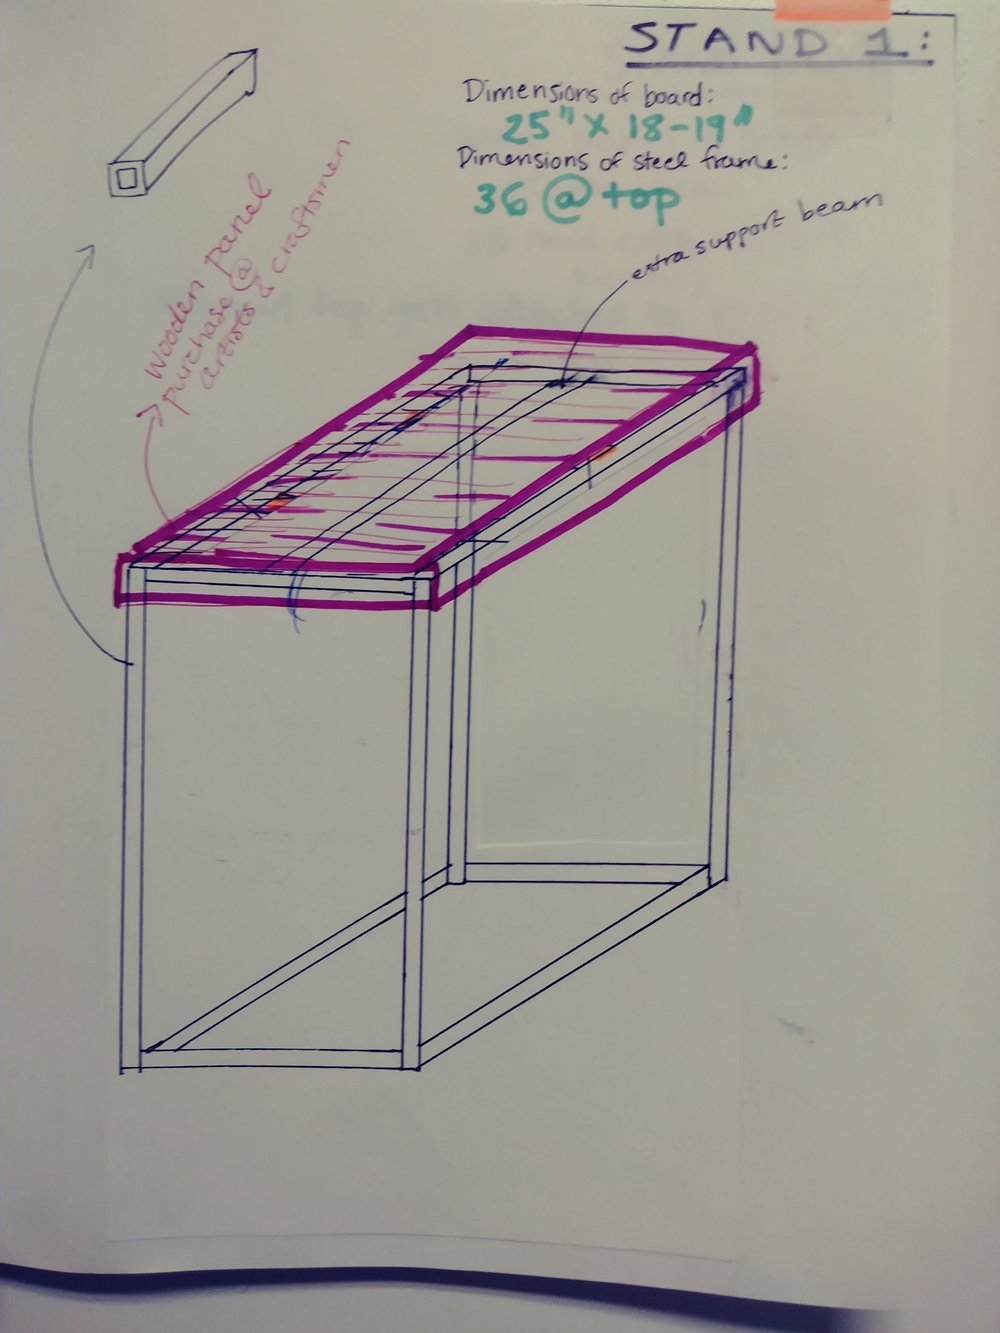 Hand-drawn-plans-for-art-pedestal.jpg